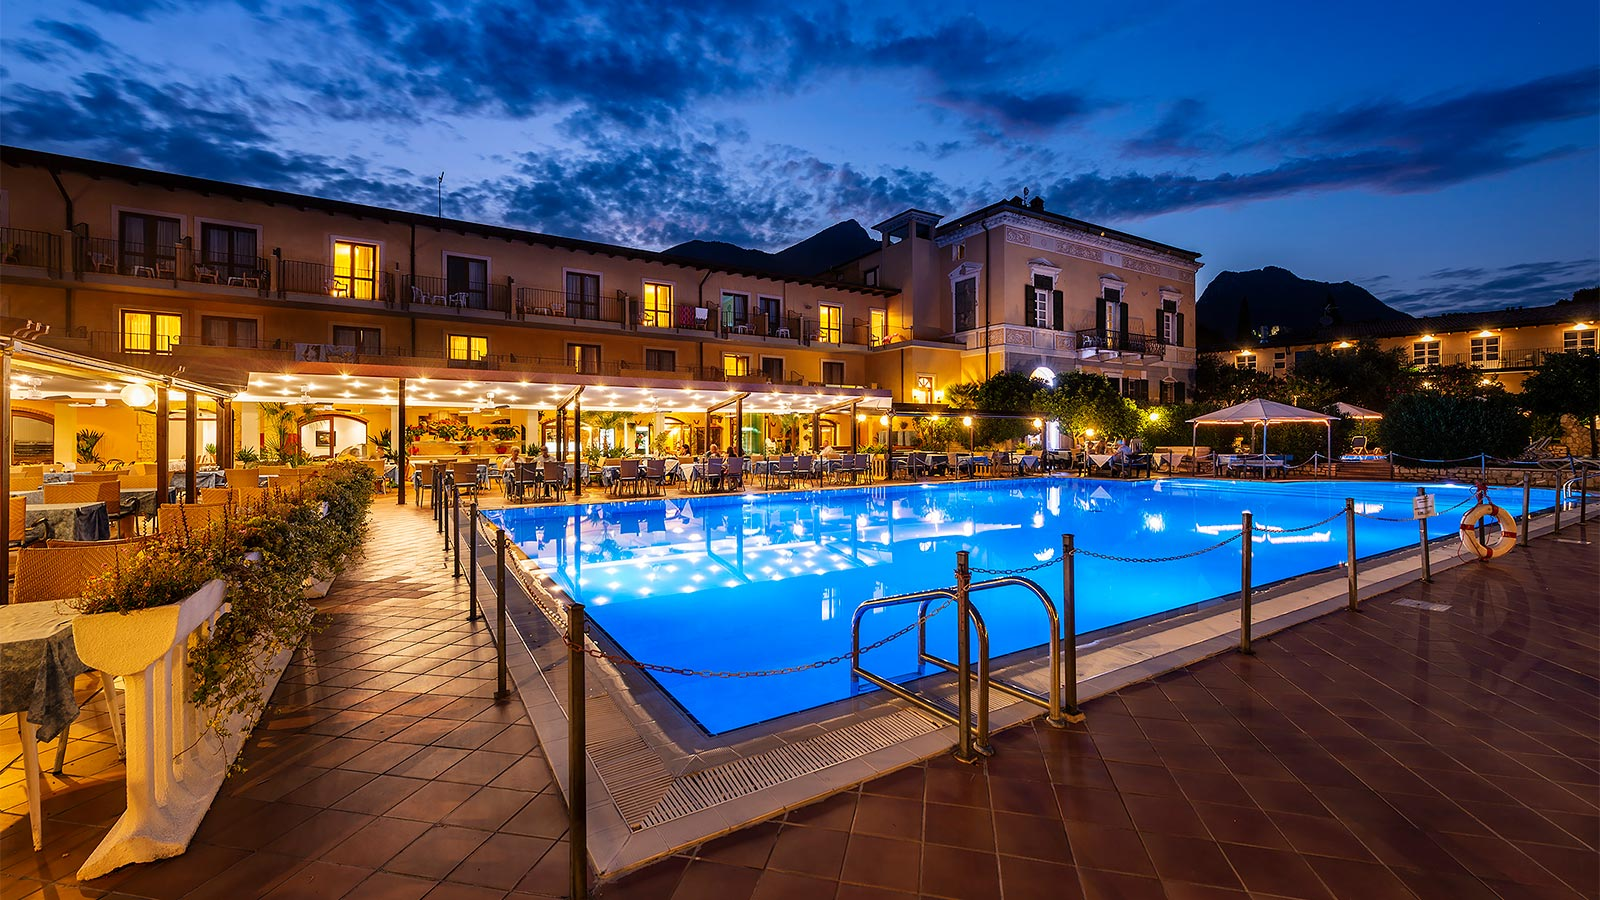 Hotel Antico Monastero at night